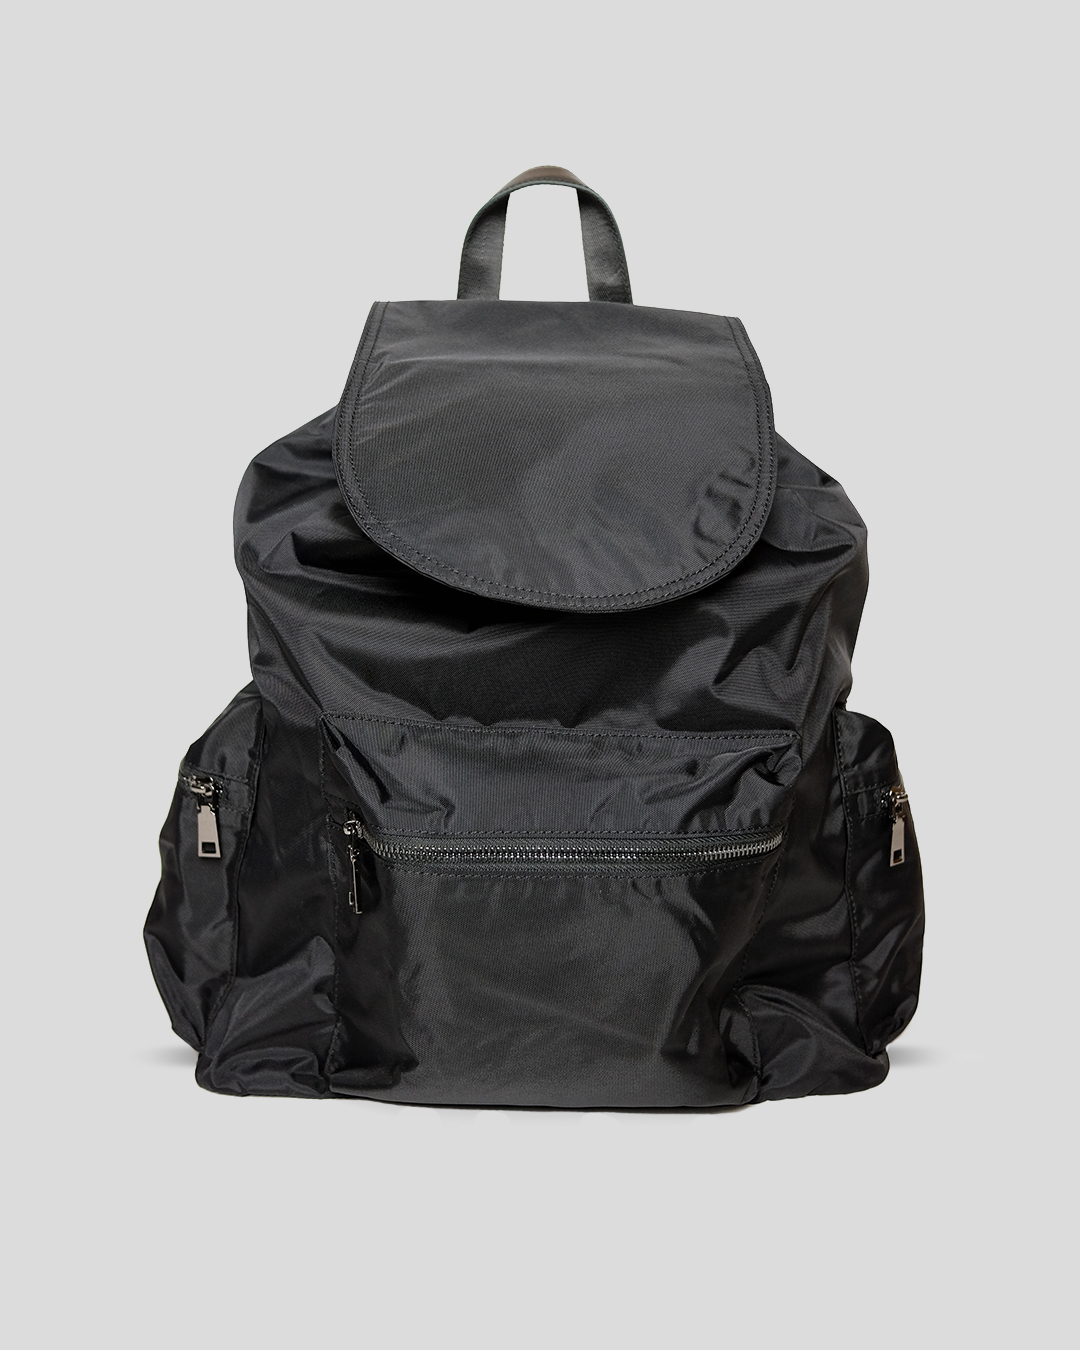 photo-1-BLACK-NYLON-RIPSTOP-BACKPACK-URBANE-MUSE-CHRIS-SMITH